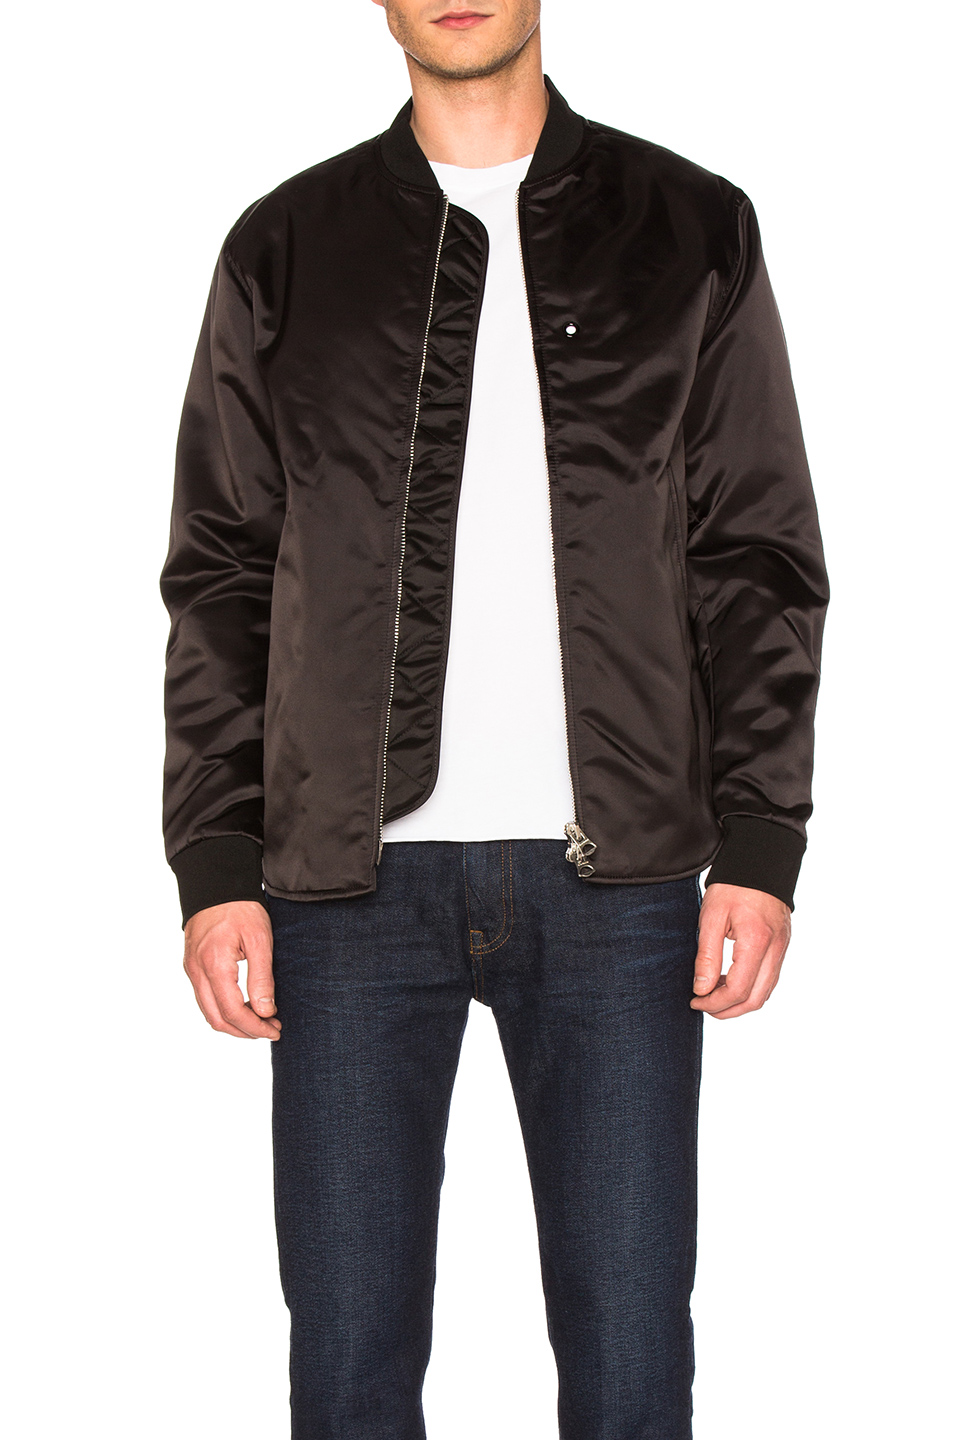 Acne Studios Nylon Bomber Jacket in Black